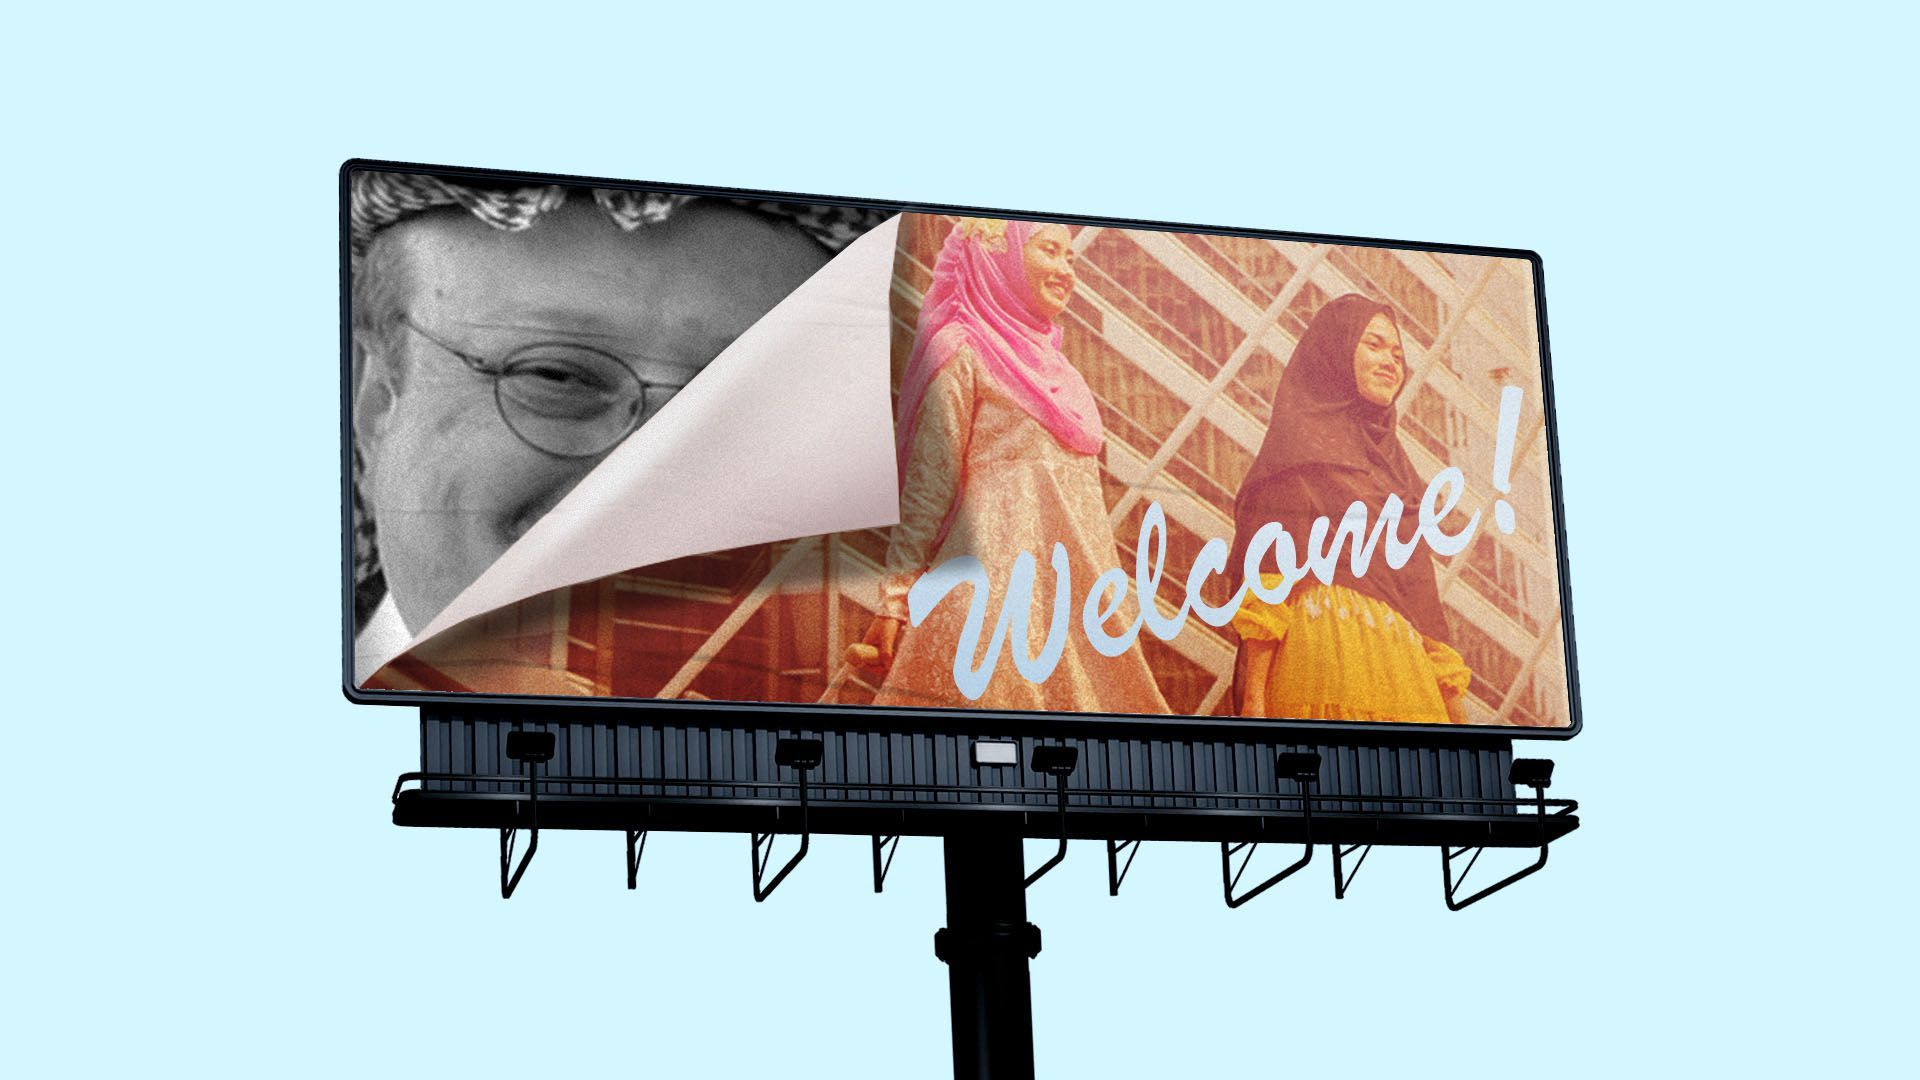 Illustration of a billboard covering up Jamal Khashoggi's face